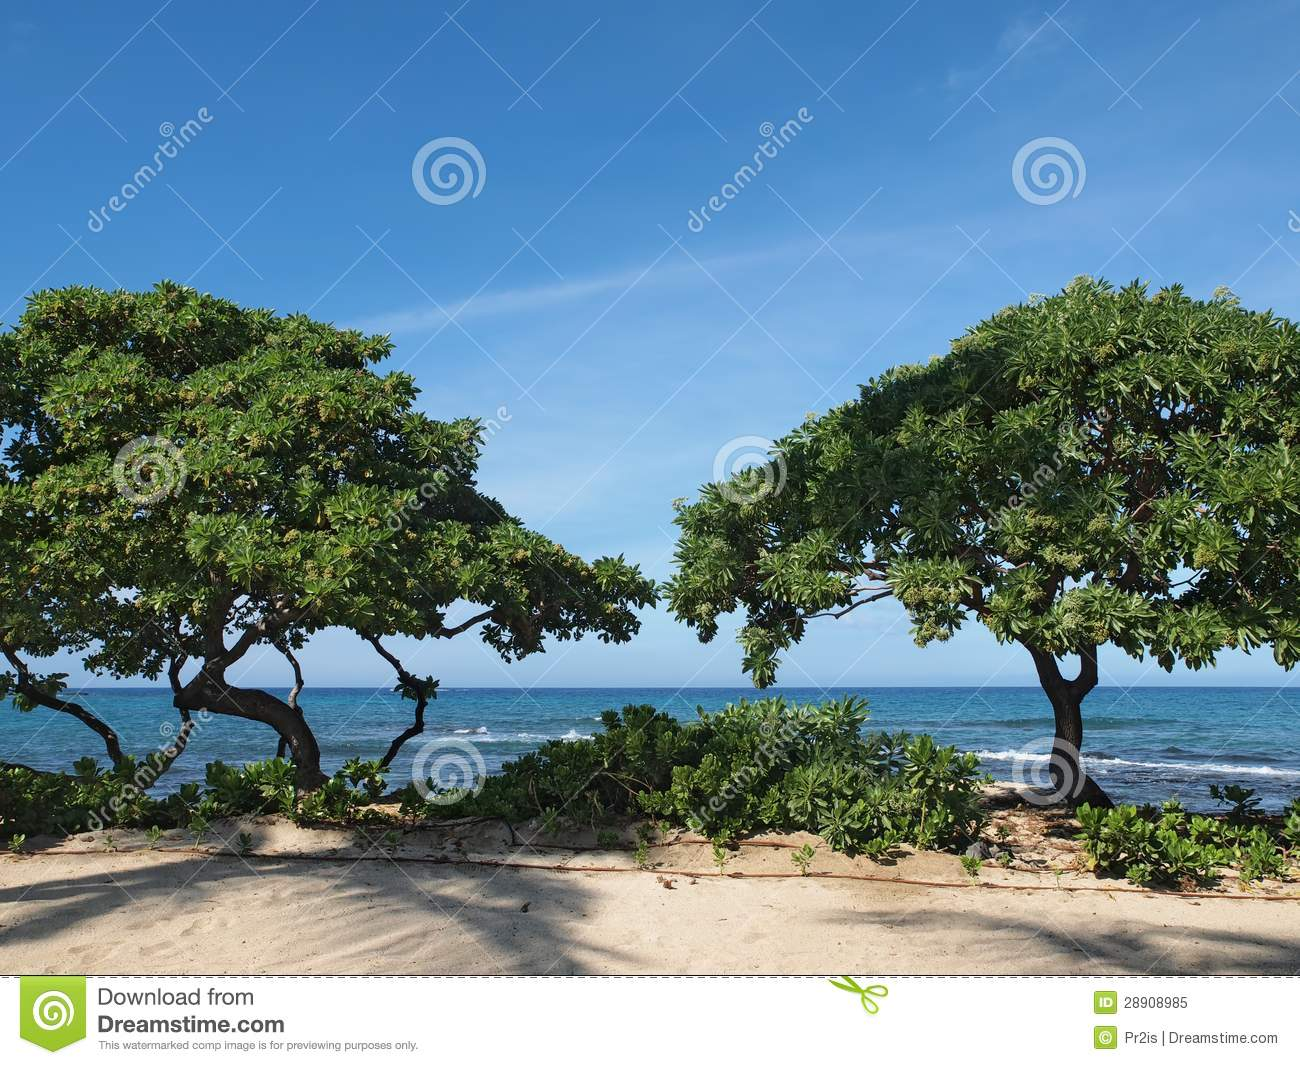 Heliotrope Trees Tournefortia Argentea On The Hawaiian Beach Royalty Free Stock Photo Image